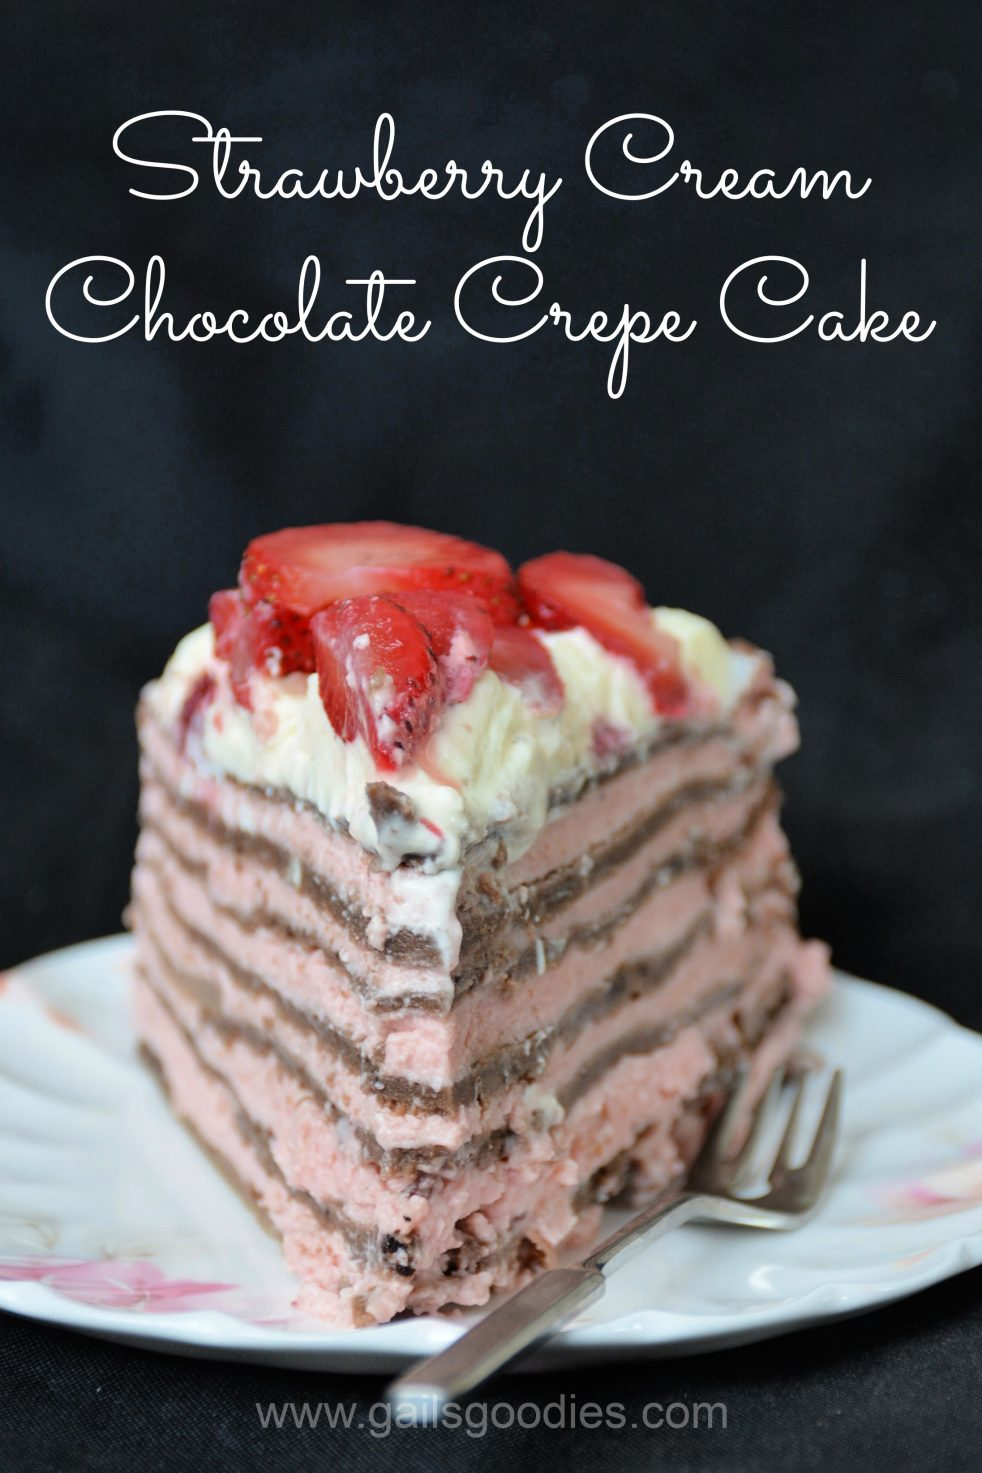 """A slice of Strawberry Cream Chocolate Crepe Cake sits on a white plate decorated with pink flowers. The cake faces forward with the point of the slice at the front of the photo. Seven milk chocolate colored crepes alternate with layers of light pink strawberry cream. The slice is topped with whipped cream and sliced strawberries. There is a fork on the plate to the right of the cake. The words """"Strawberry Cream Chocolate Crepe Cake"""" are at the top of the photo."""